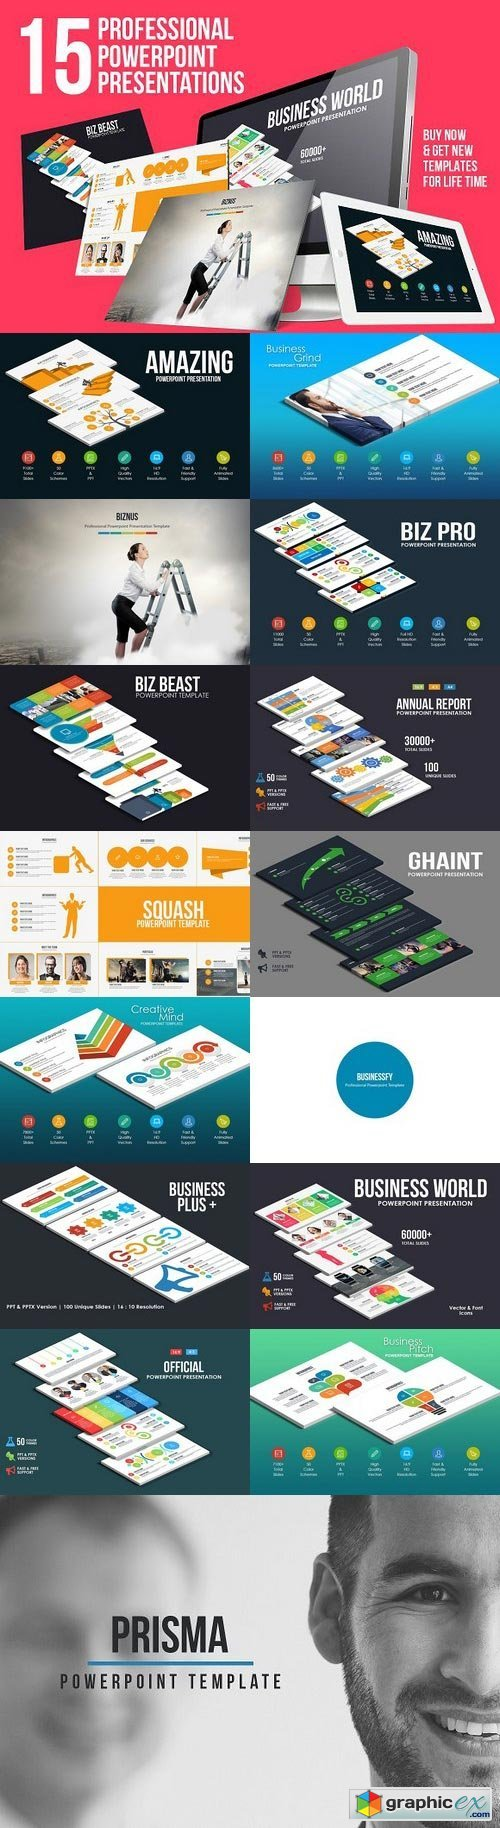 The Professional Presentation Bundle 1106885